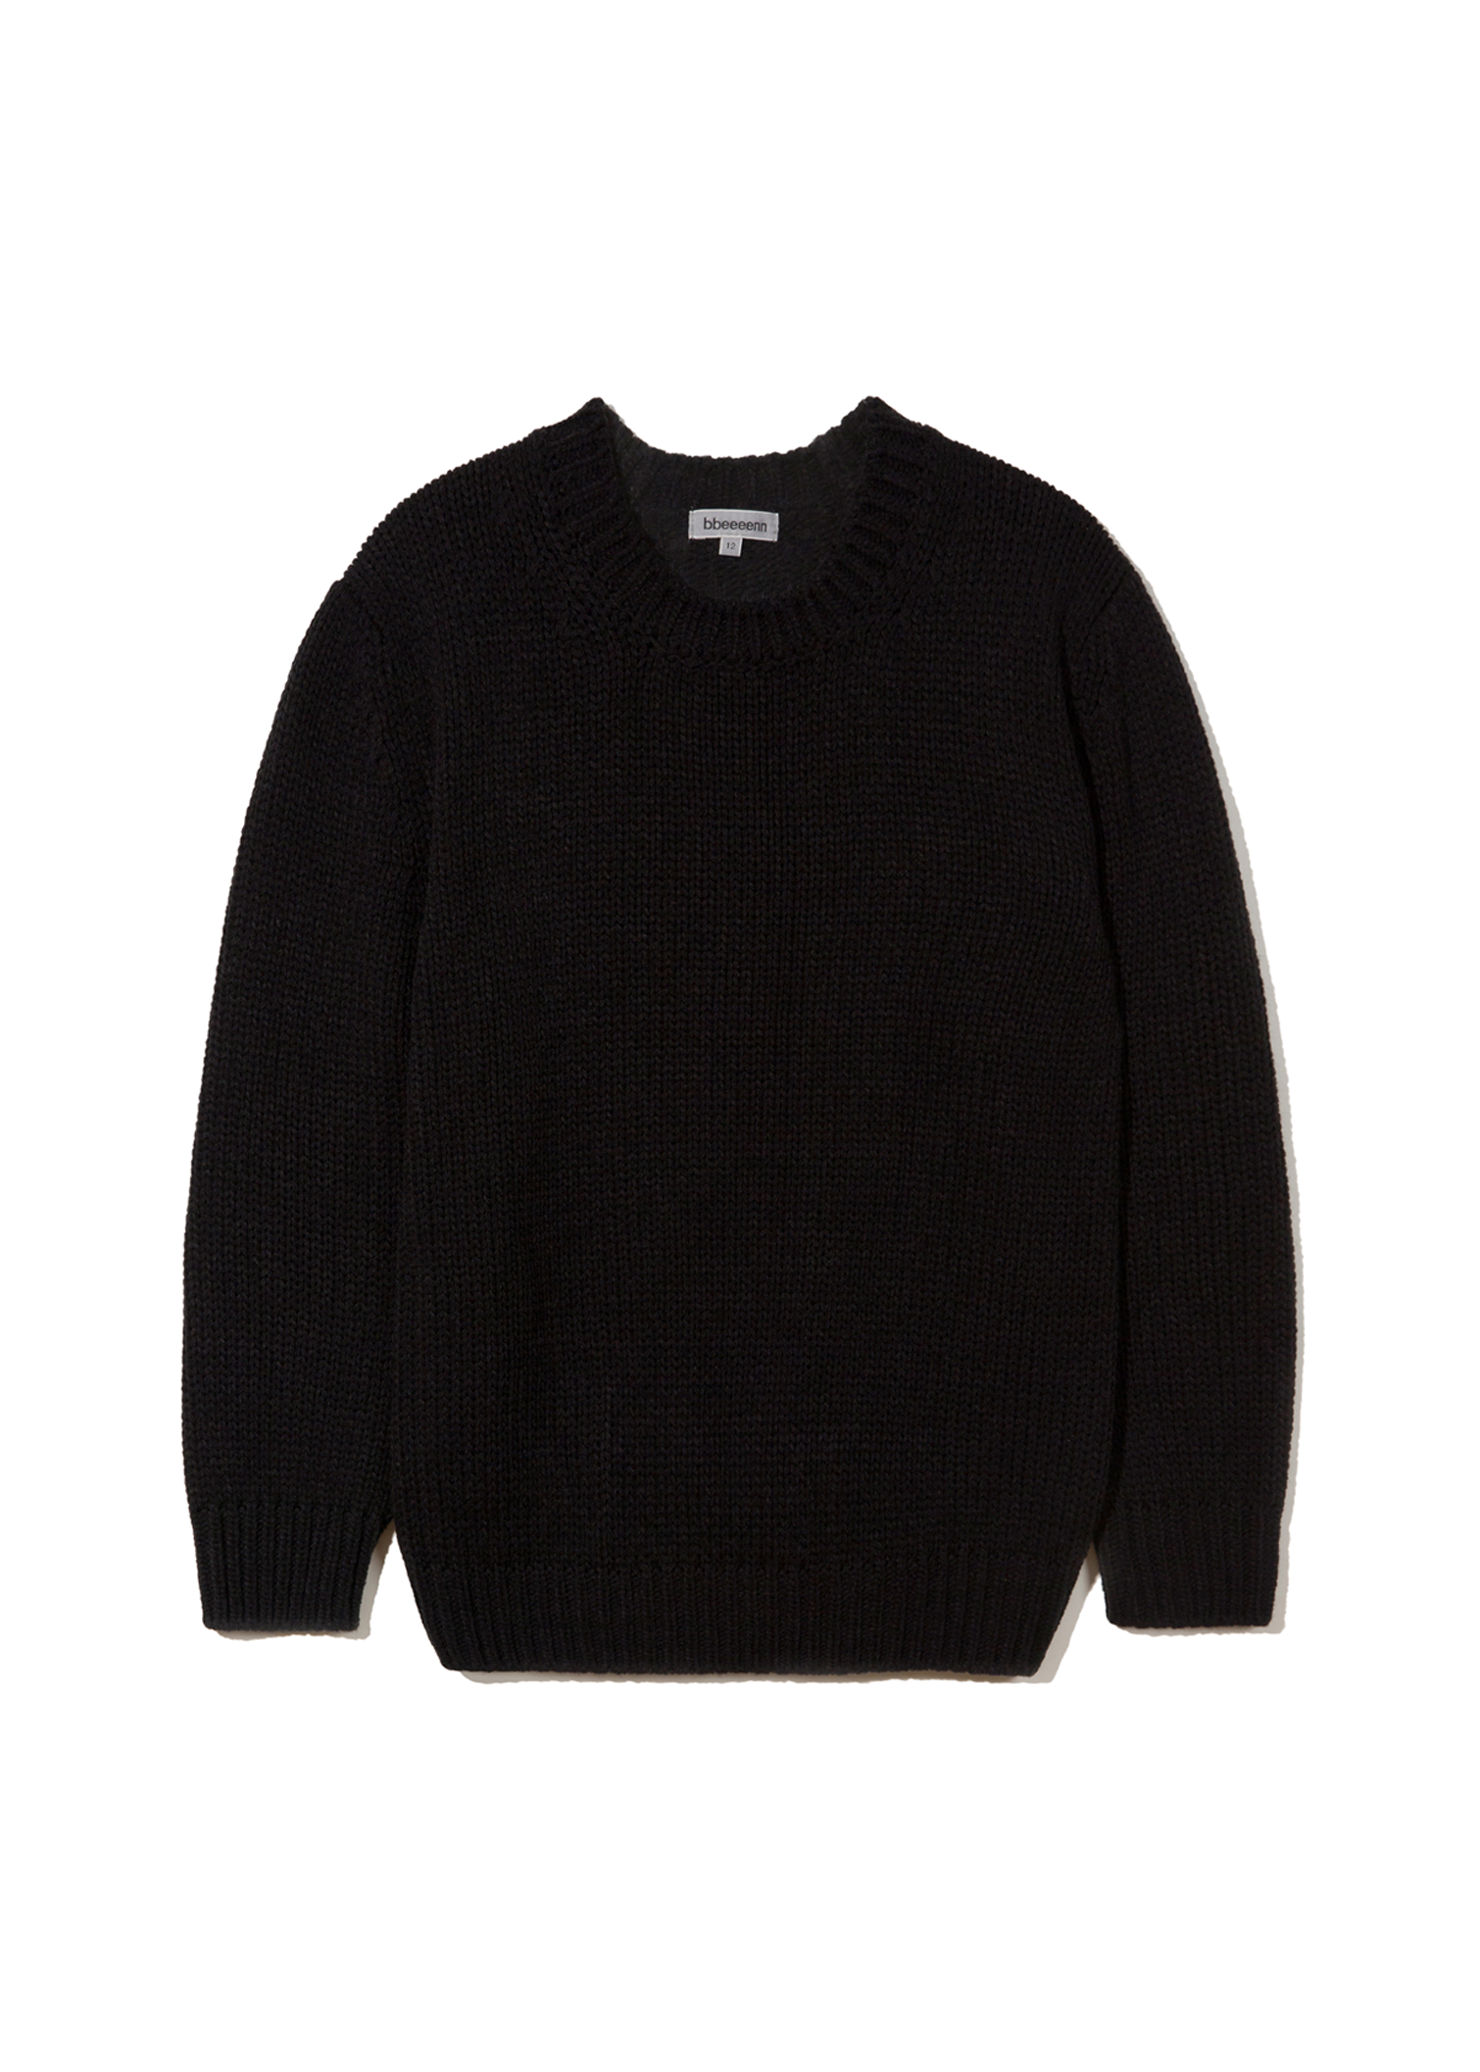 DADDY)Ben)Chunky Warm Knit_Black